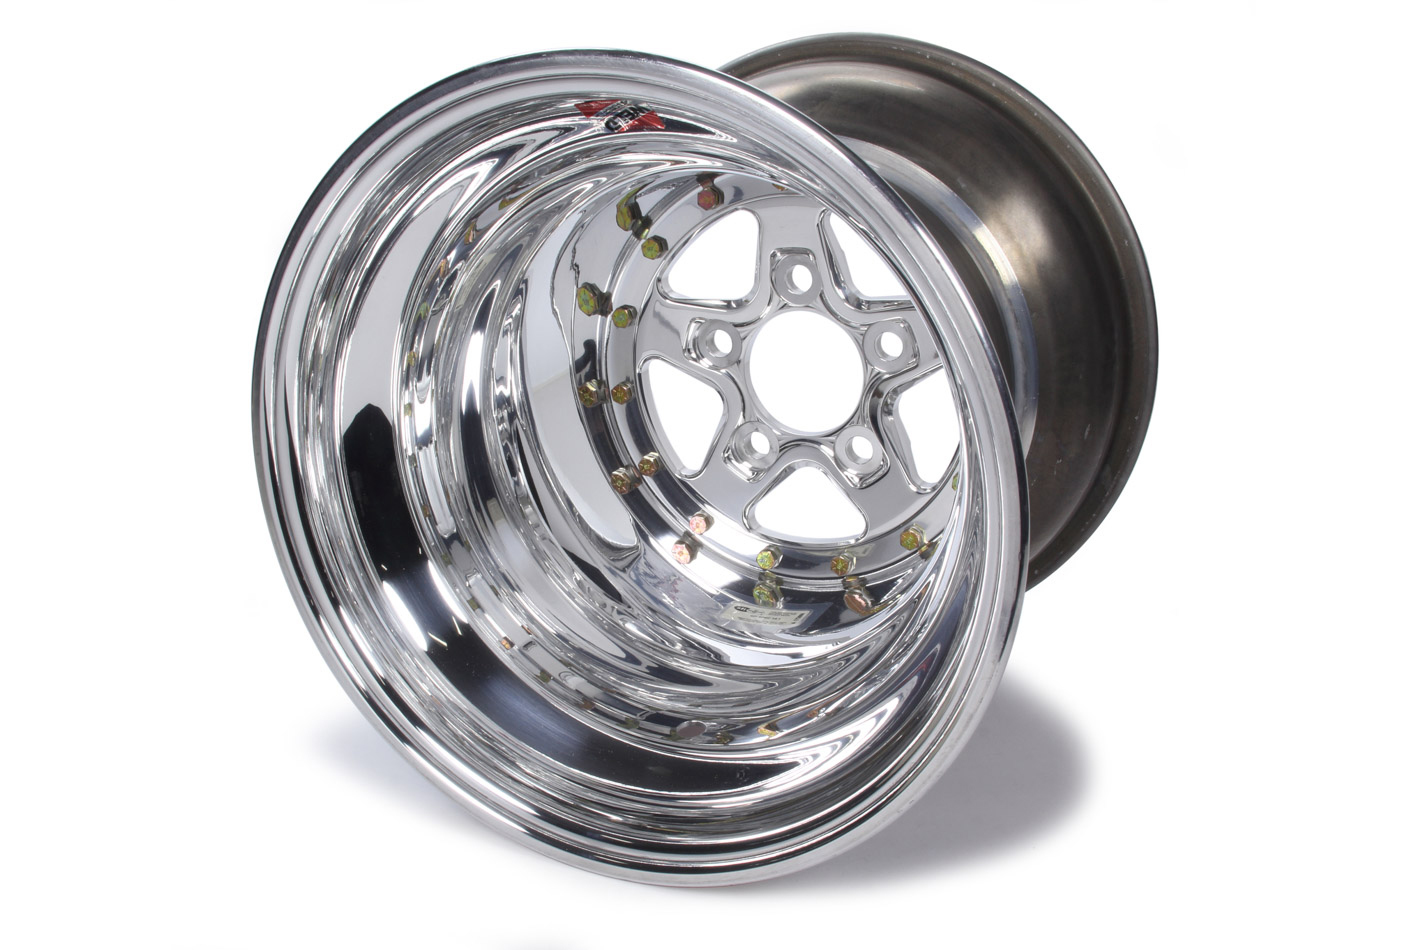 WELD RACING 15 X 14in Aluma Star 5 X 4.75in 6-3/8in BS P/N - 88-514282